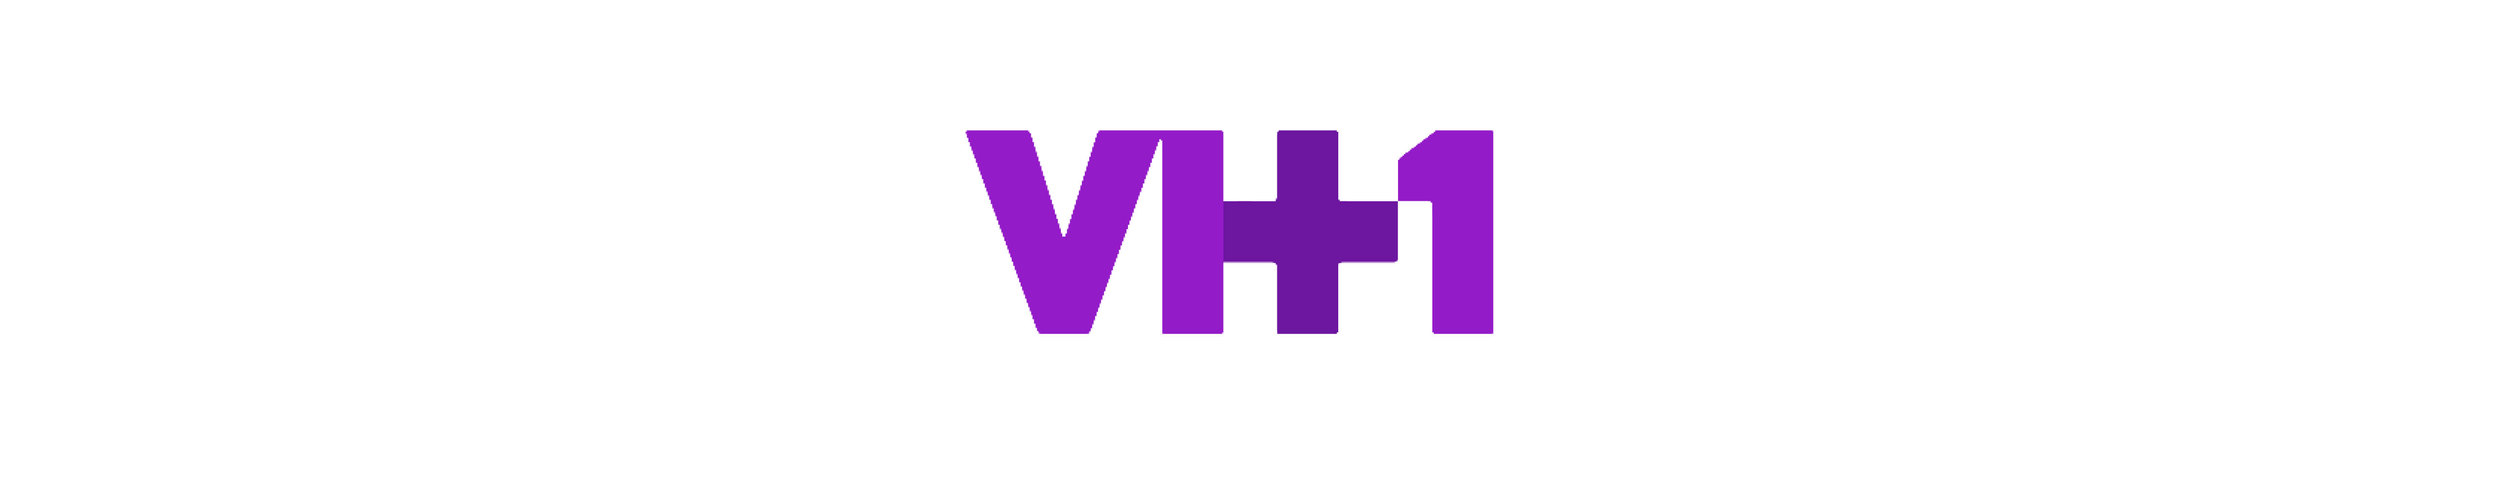 In celebration of 30 years of provoking popculture, VH1 collected 30 of the most shocking moments of all time. The jaw dropping content will leave you no choice but to stay tuned.